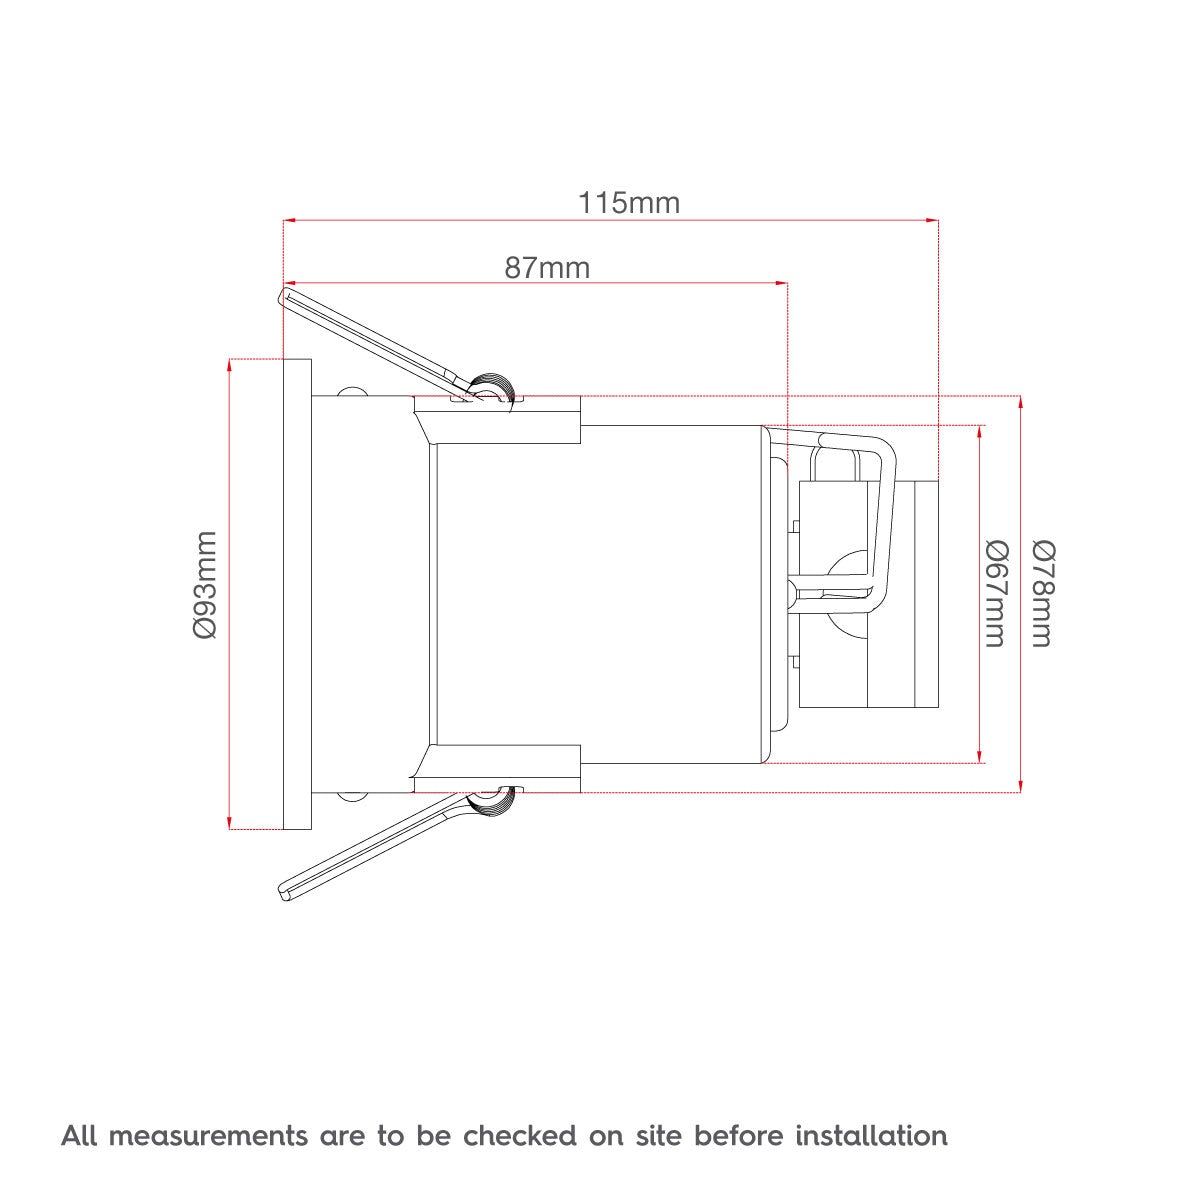 Dimensions for Forum adjustable fire rated bathroom downlight in chrome